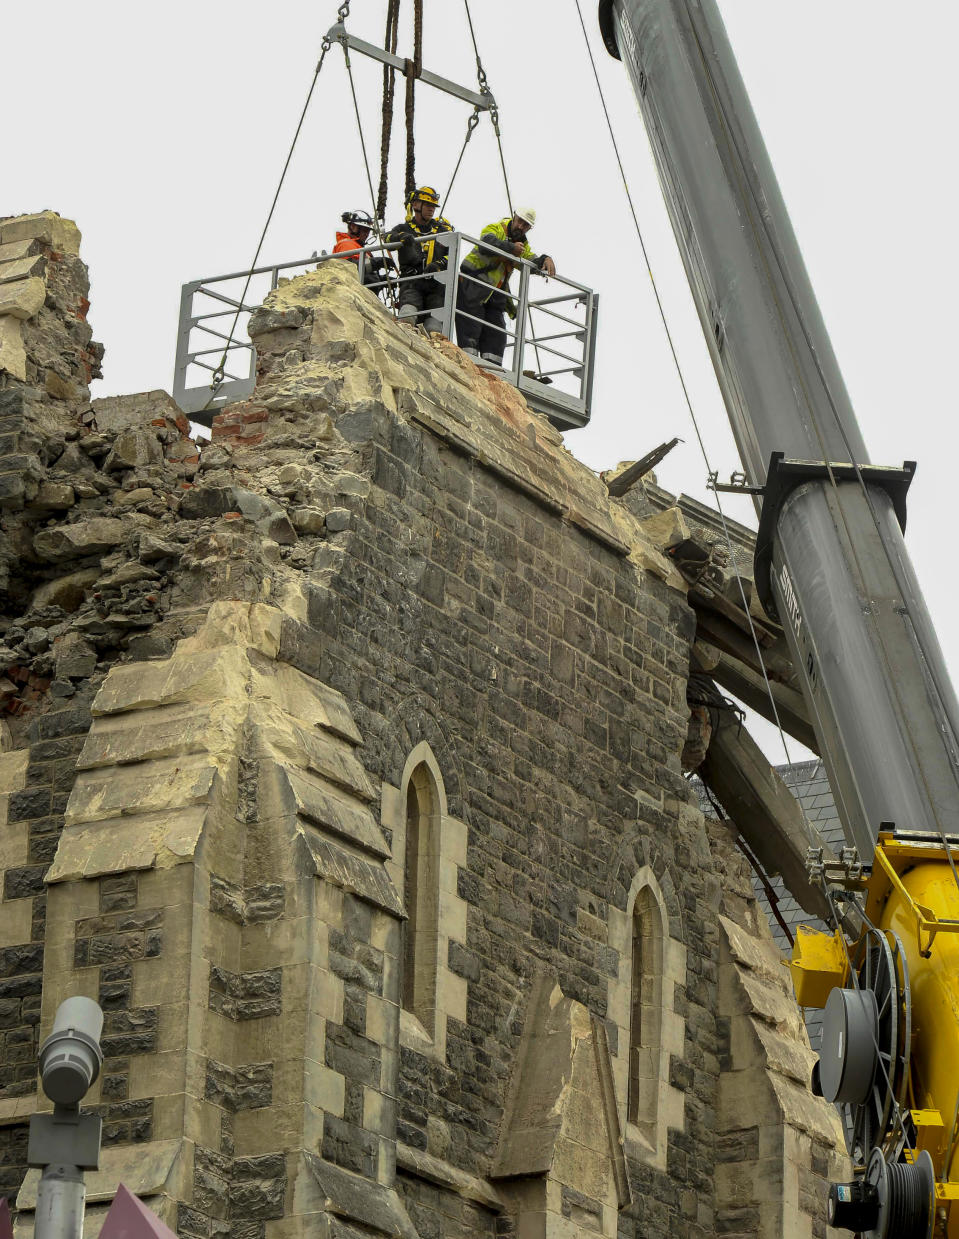 FILE - In this Feb. 25, 2011, file photo, recovery operation workers are lowered by crane onto the top of the earthquake damaged Christ Church Cathedral in Christchurch, New Zealand. The Christ Church Cathedral was arguably New Zealand's most iconic building before much of it crumbled during an earthquake 10 years ago. The years of debate that followed over whether the ruins should be rebuilt or demolished came to symbolize the paralysis that has sometimes afflicted the broader rebuild of Christchurch. But as the city on Monday, Feb. 22, 2021 marks one decade since the quake struck, killing 185 people and upending countless more lives, there are finally signs of progress on the cathedral. It's being rebuilt to look much like the original that was finished in 1904, only with modern-day improvements to make it warmer and safer. (AP Photo/Rob Griffith, File)